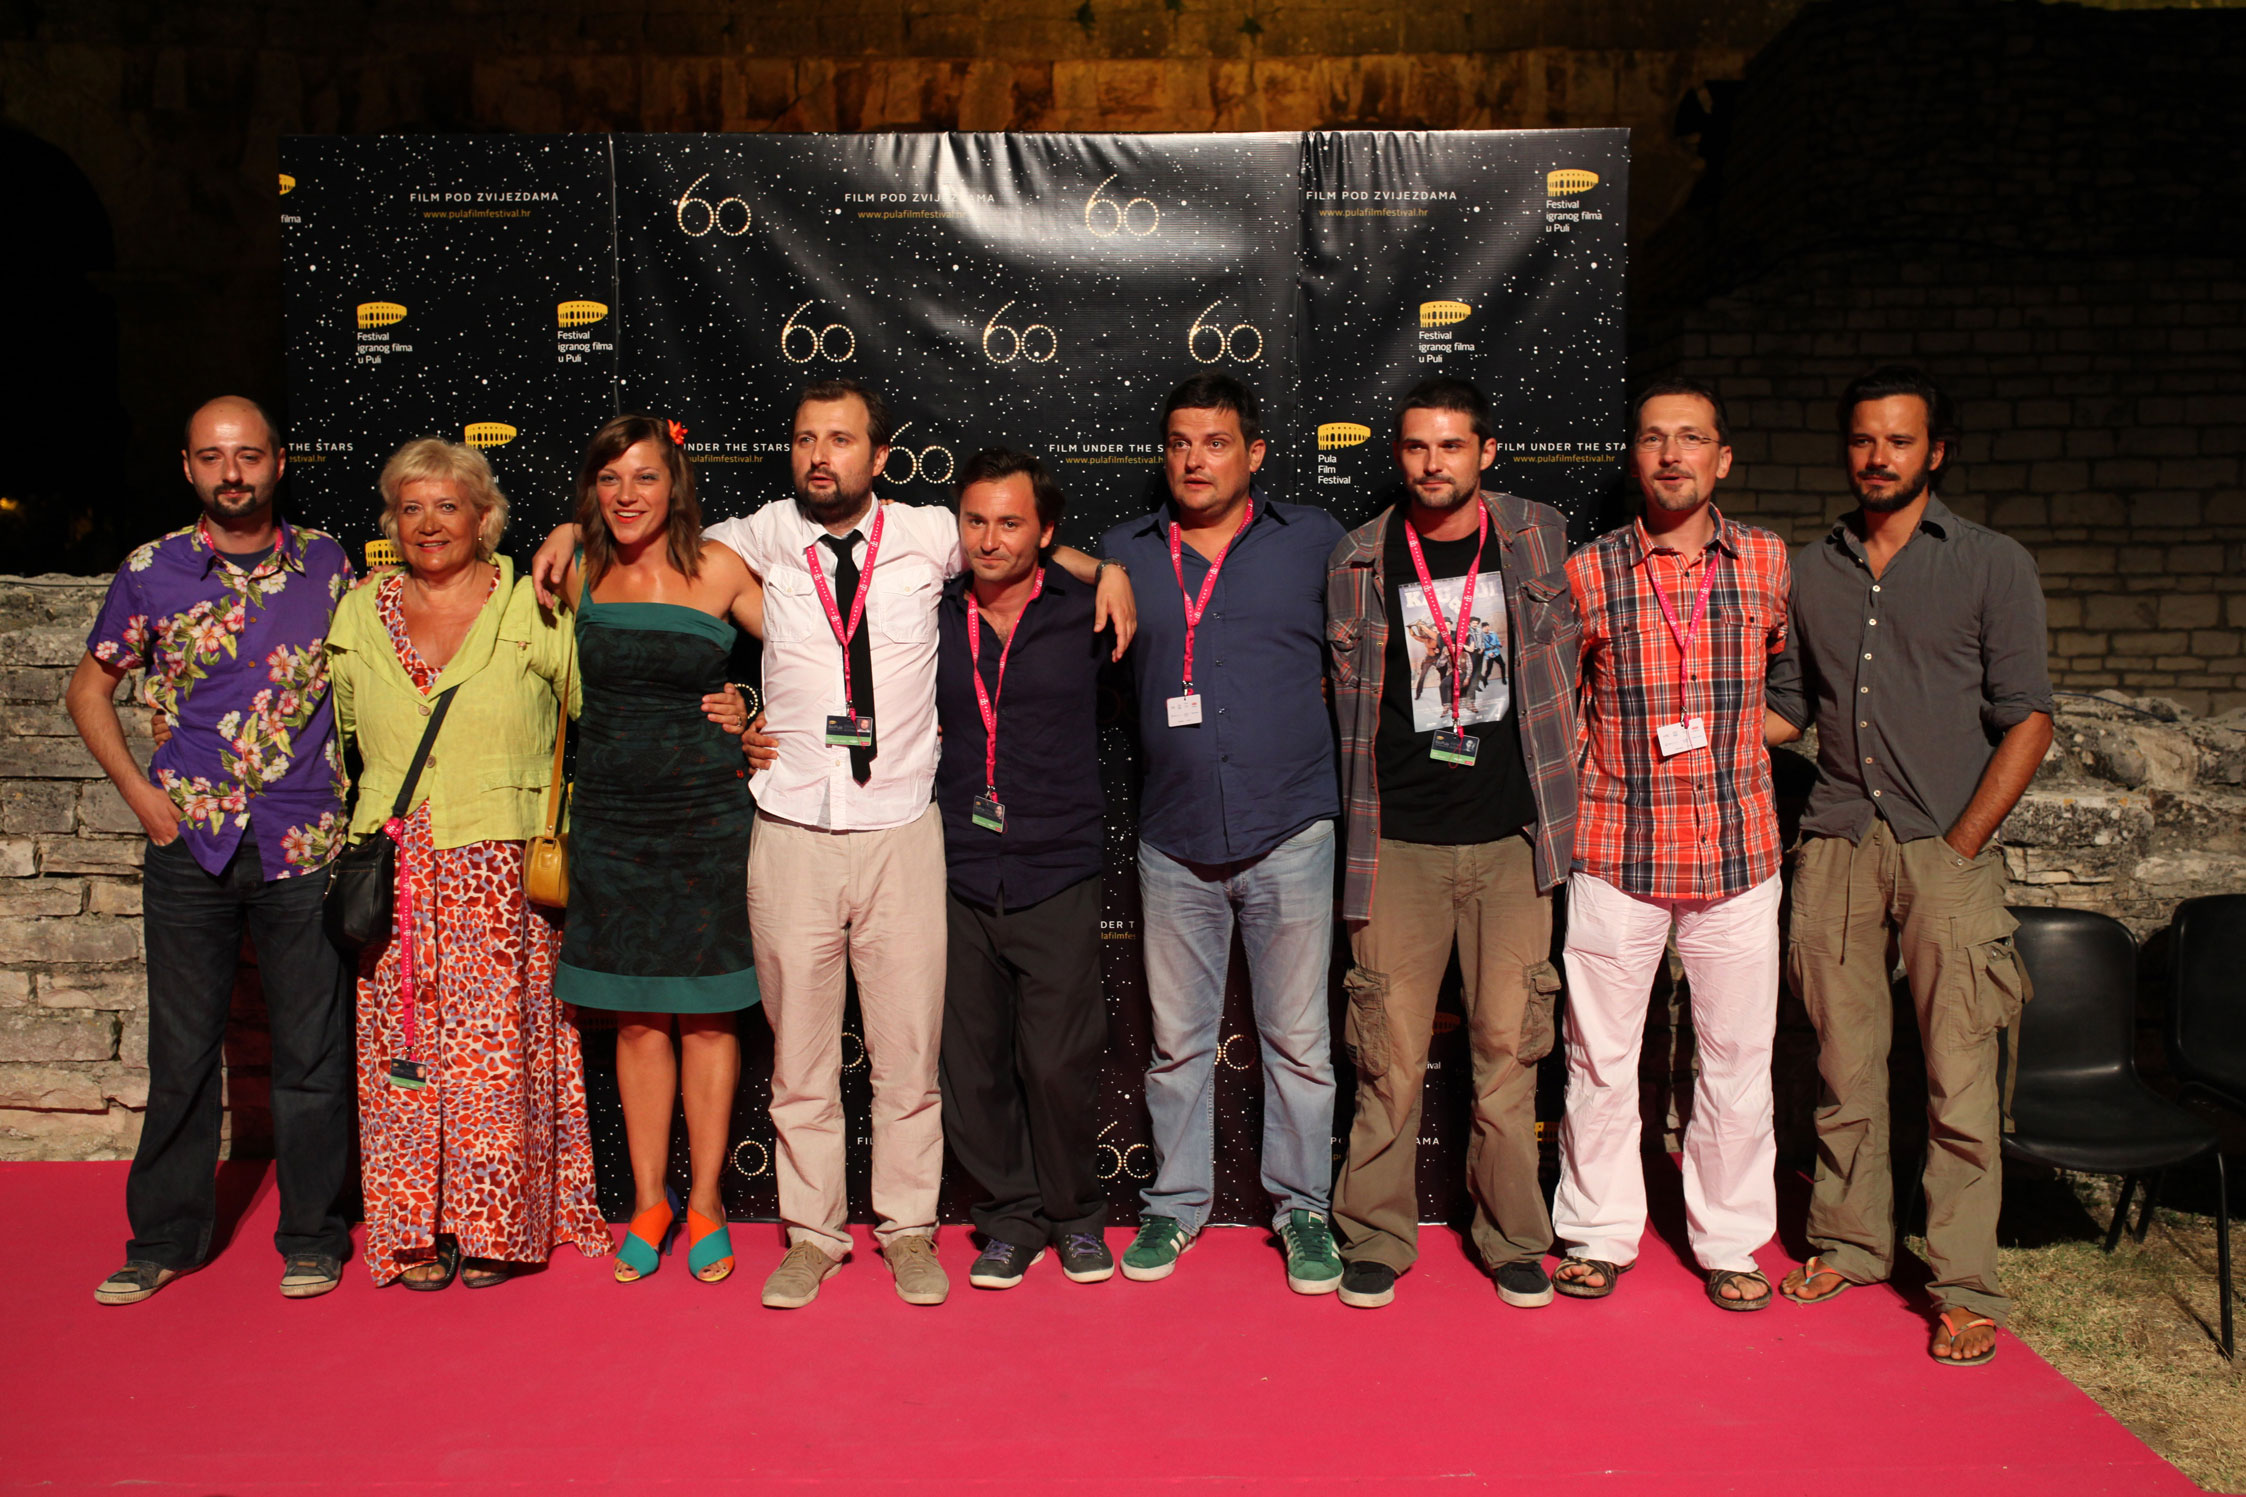 Cowboys' premiere and audience award at Pula Film Festival